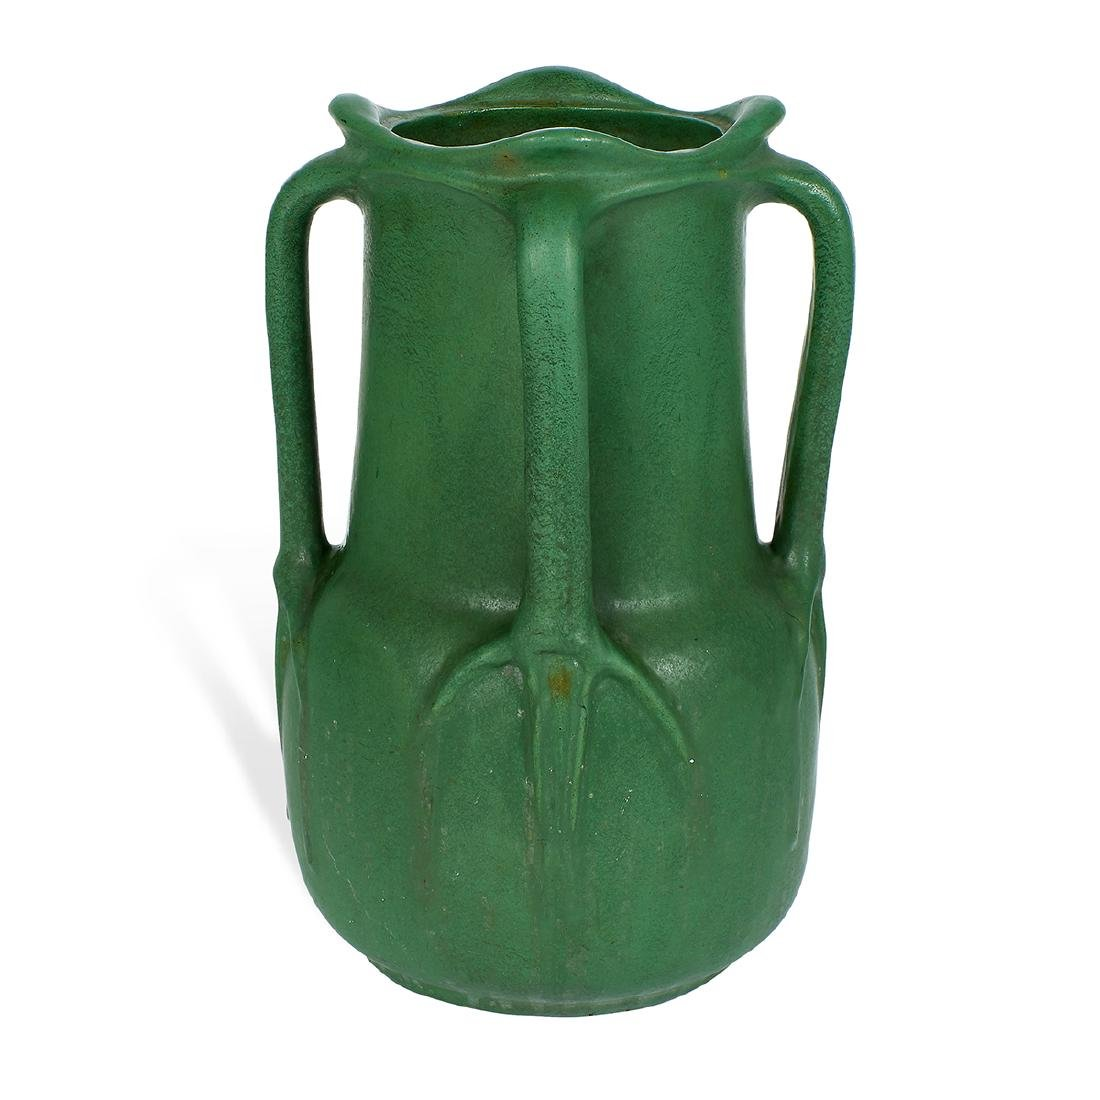 Wheatley Pottery Company, Four-Handled Vase - 2